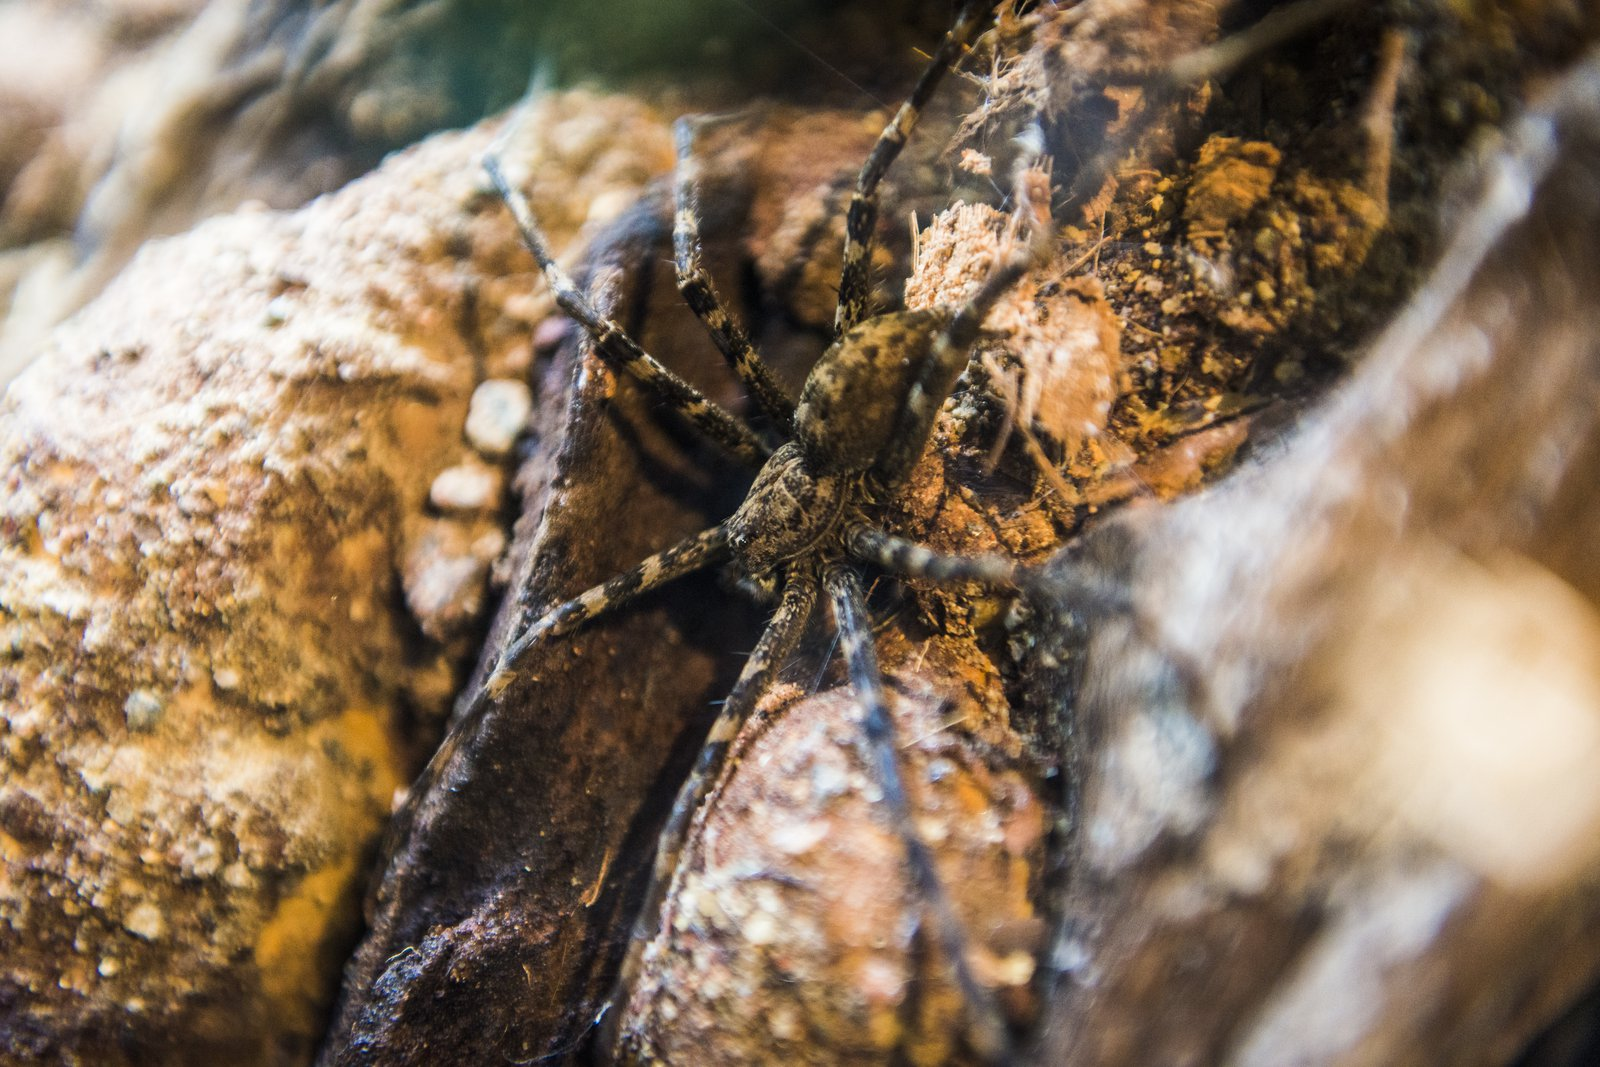 Giant Water spider